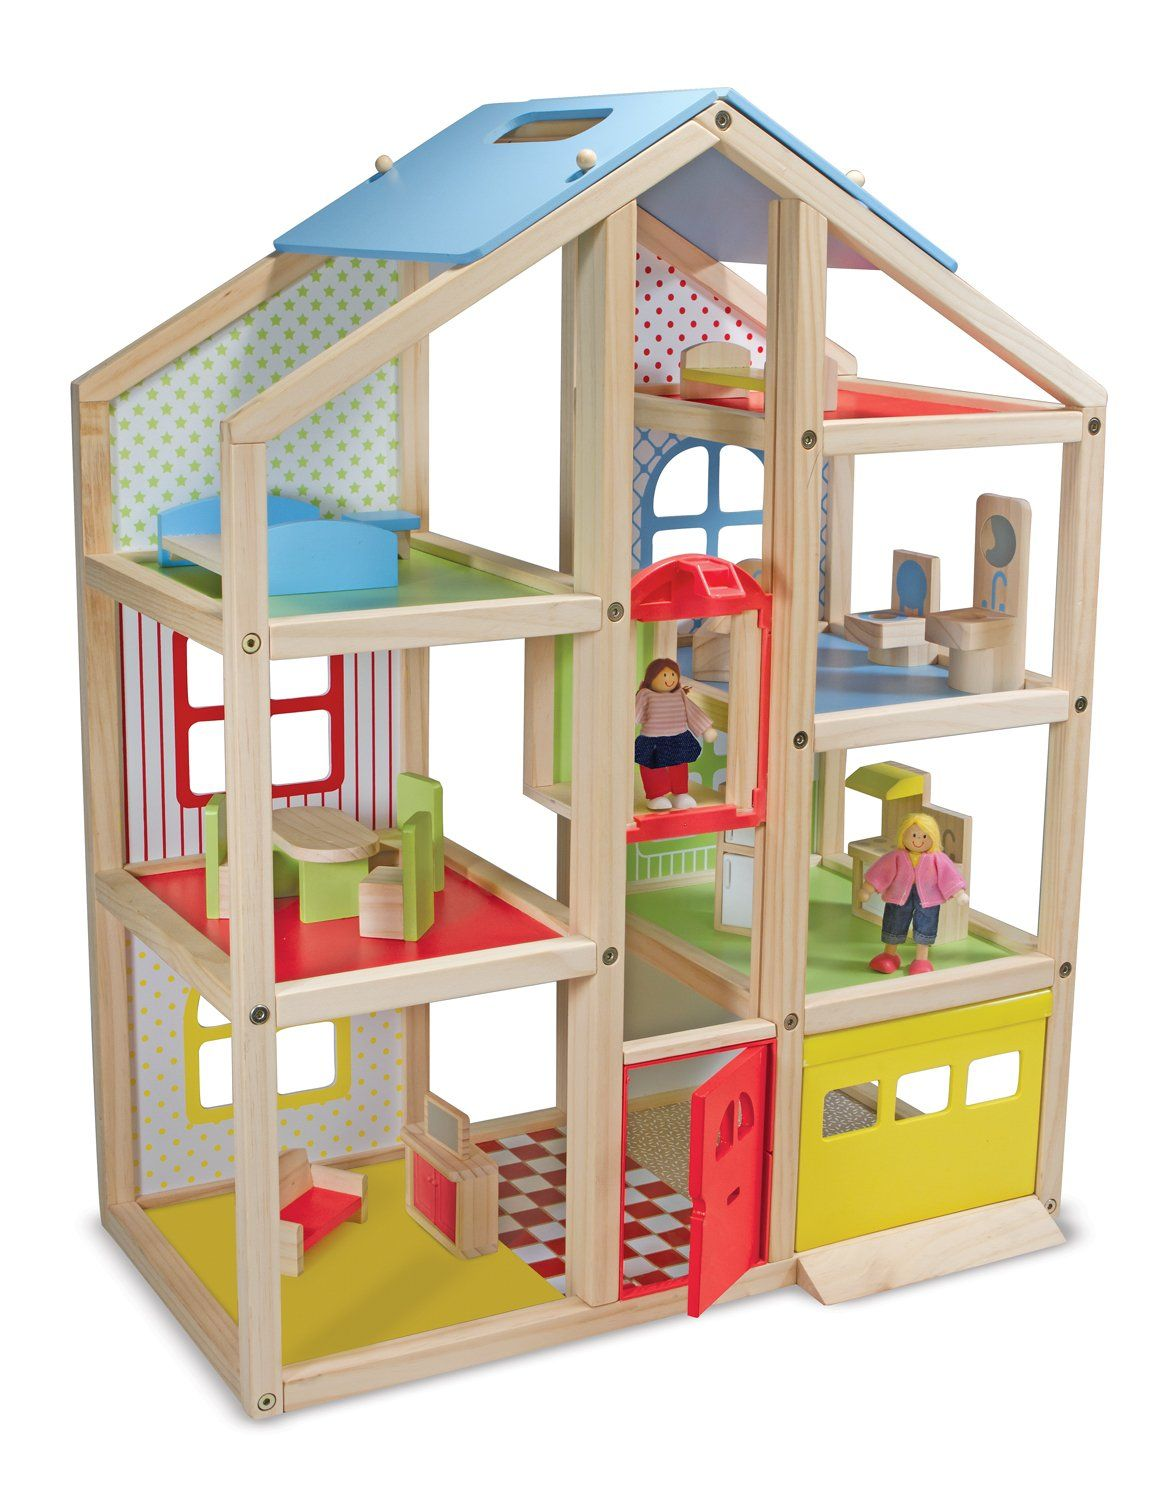 Amazon.com: Melissa & Doug Hi-Rise Dollhouse and Furniture Set: Melissa & Doug: Toys & Games